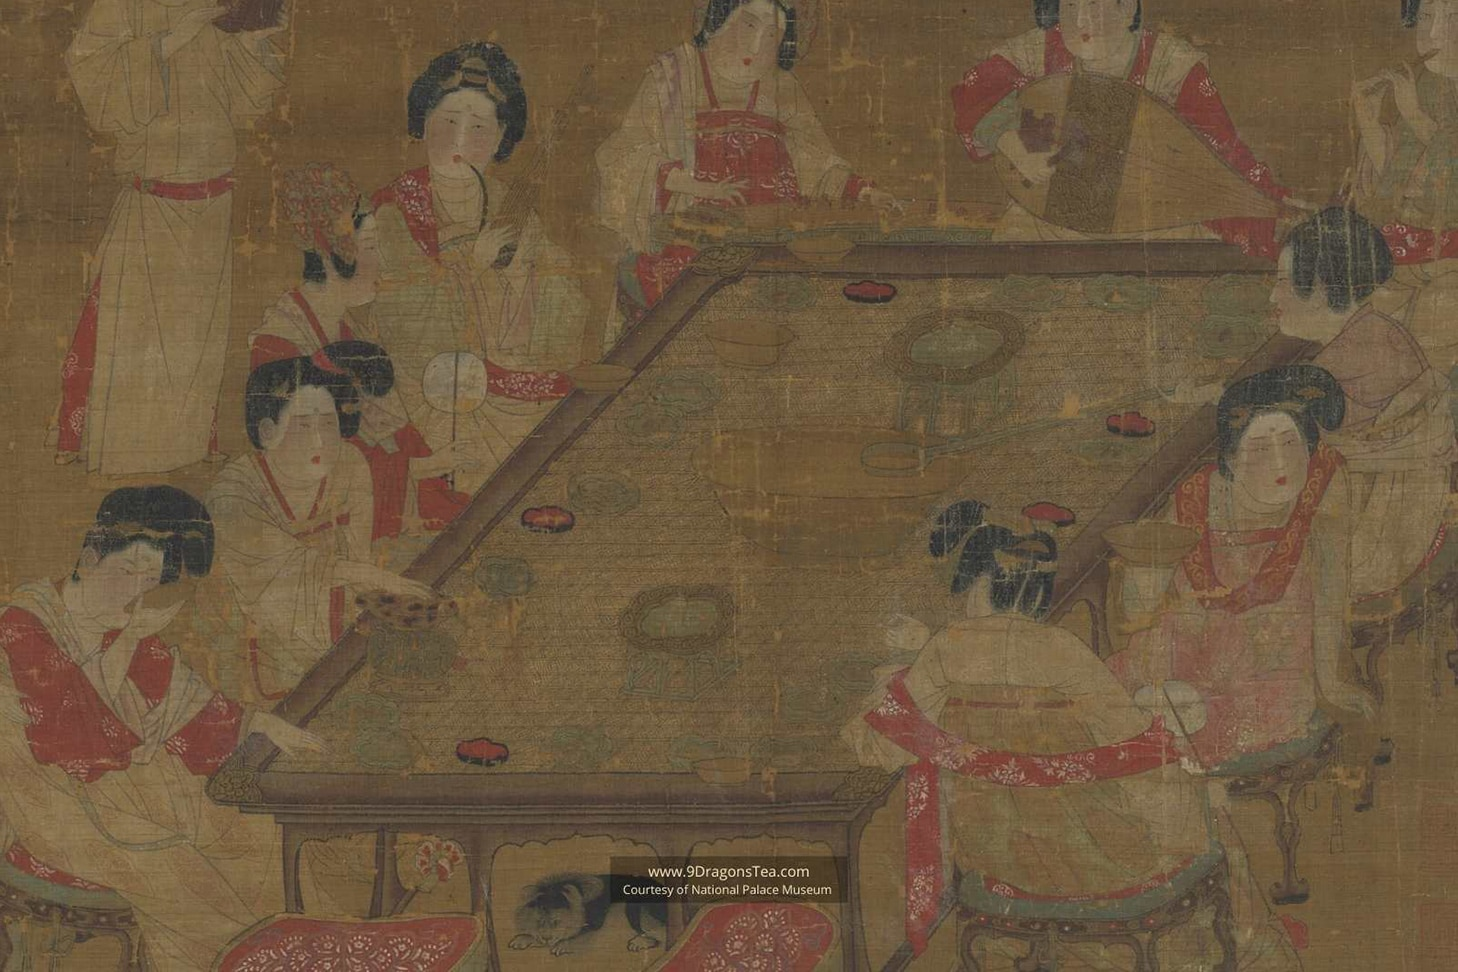 chinese tea history historical painting imperial court ladies having tea party tang dynasty